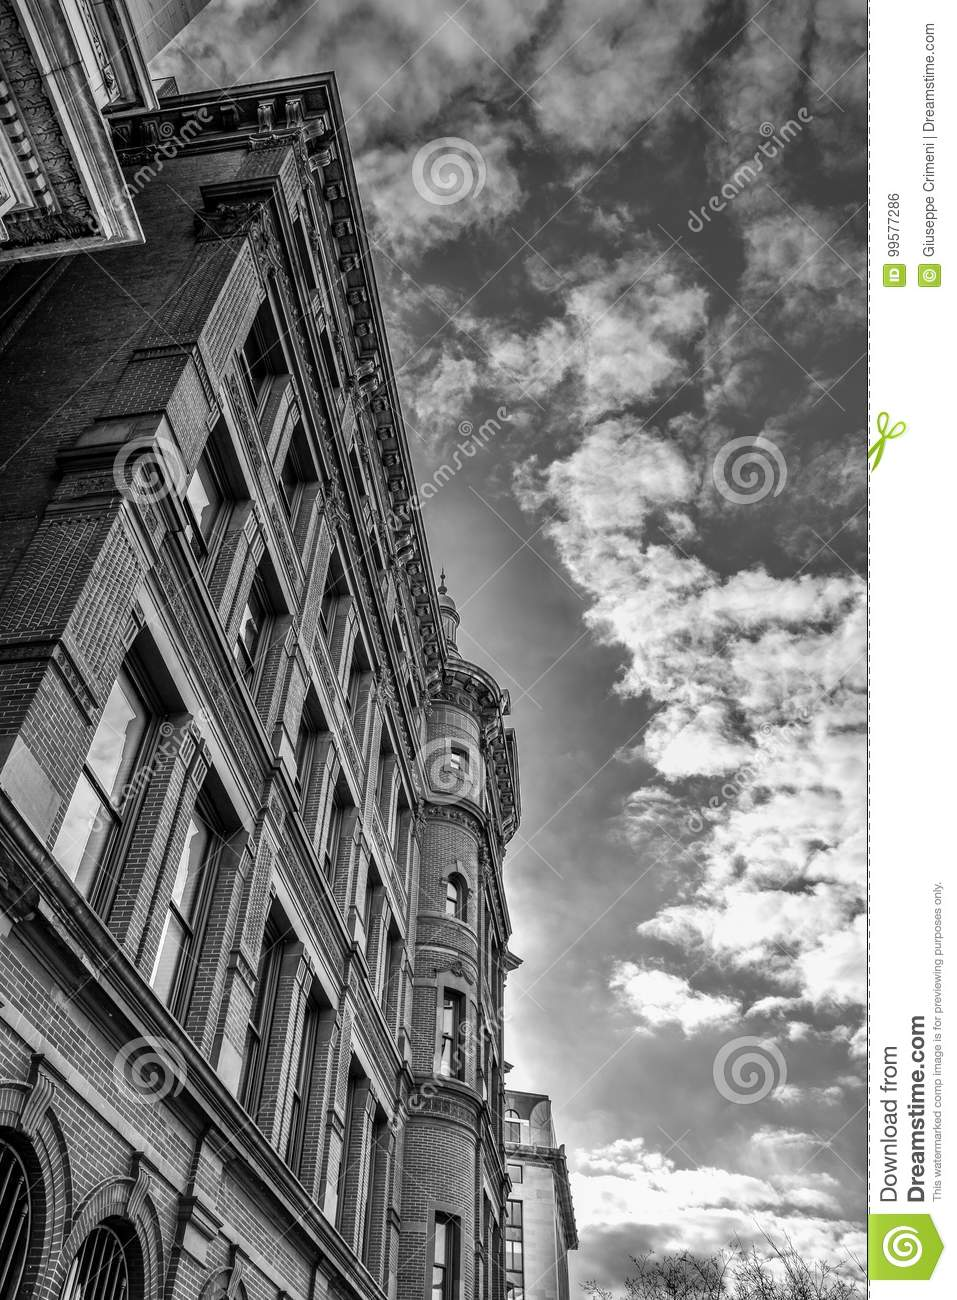 Washington DC, USA. Historic SunTrust building with the clock tower. Black and white version of the shot.